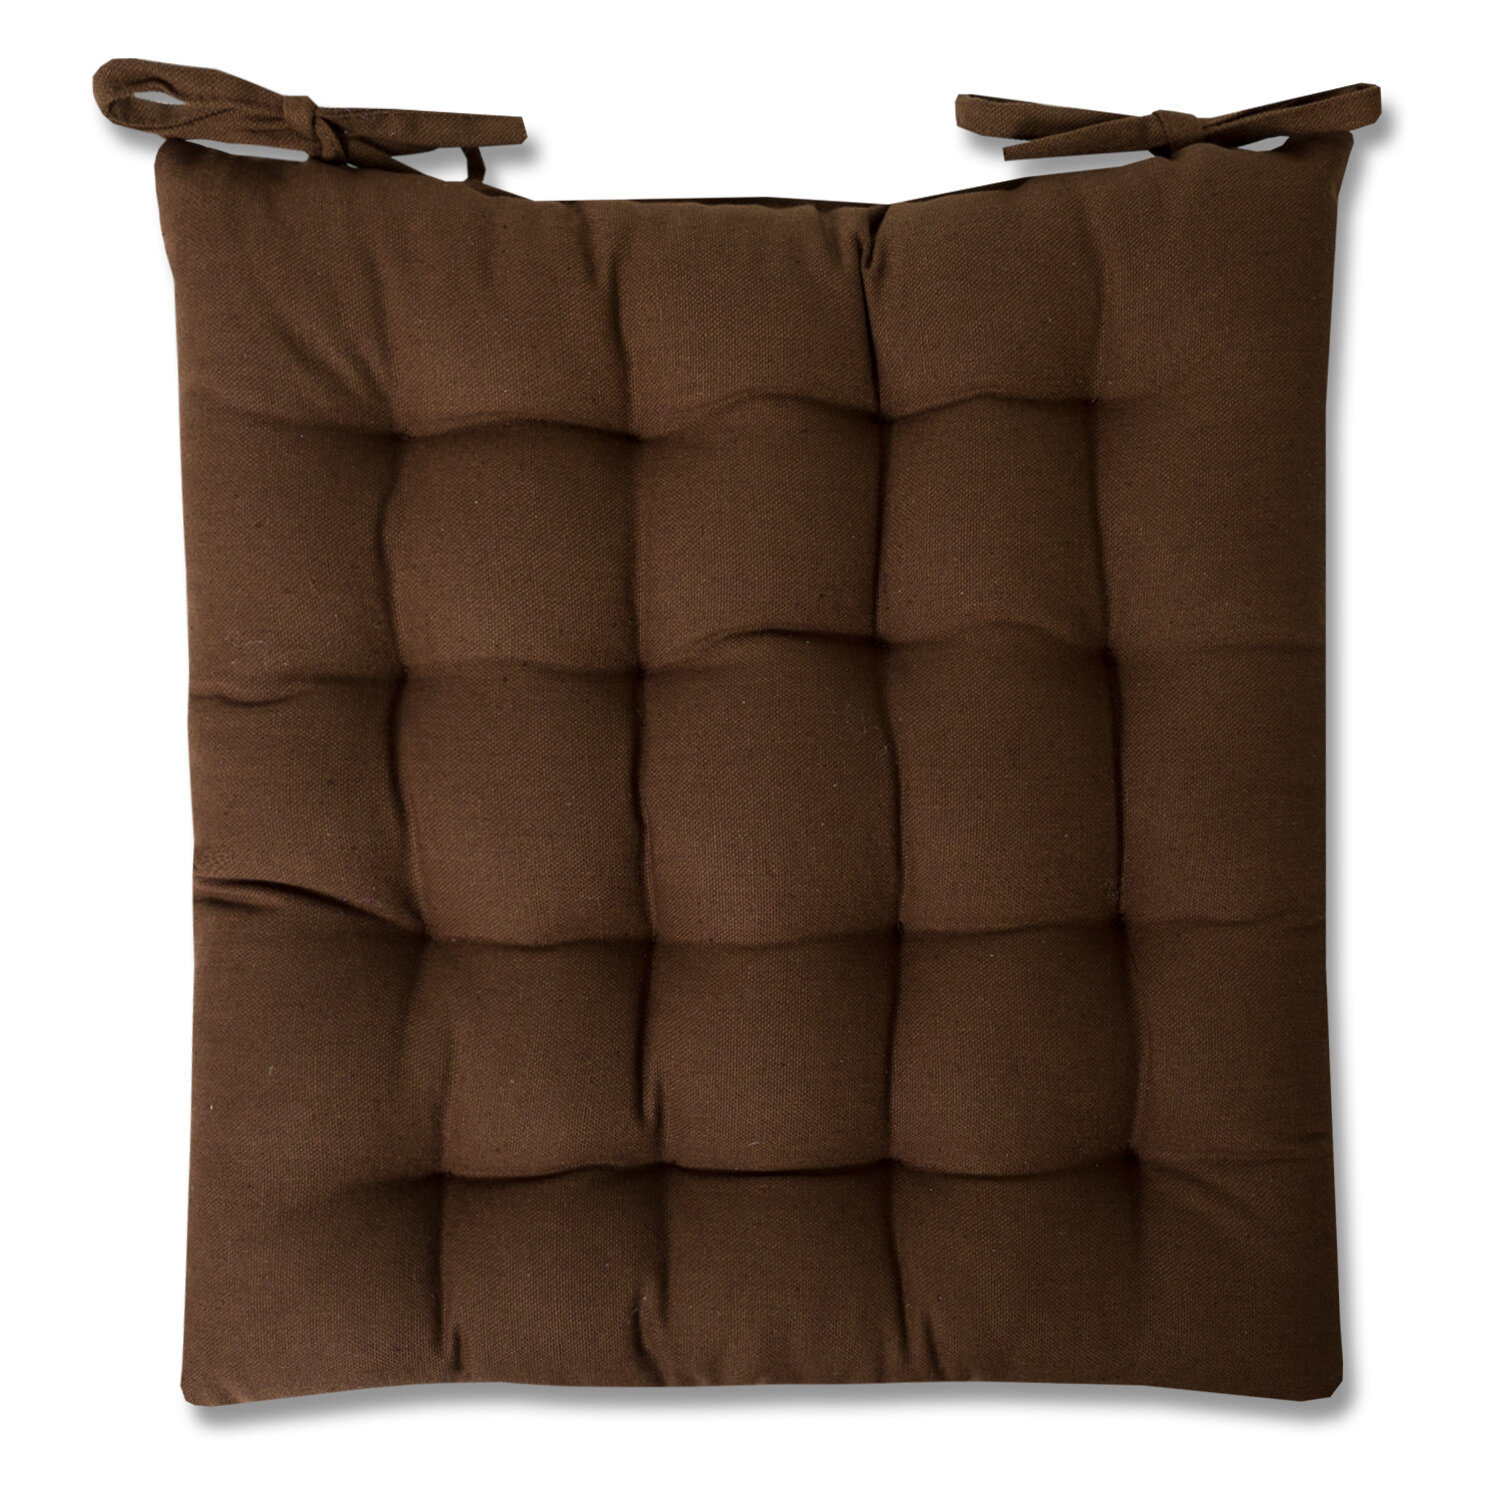 Charlton Home Tufted Cotton Cover Indoor Dining Chair Cushion Wayfair